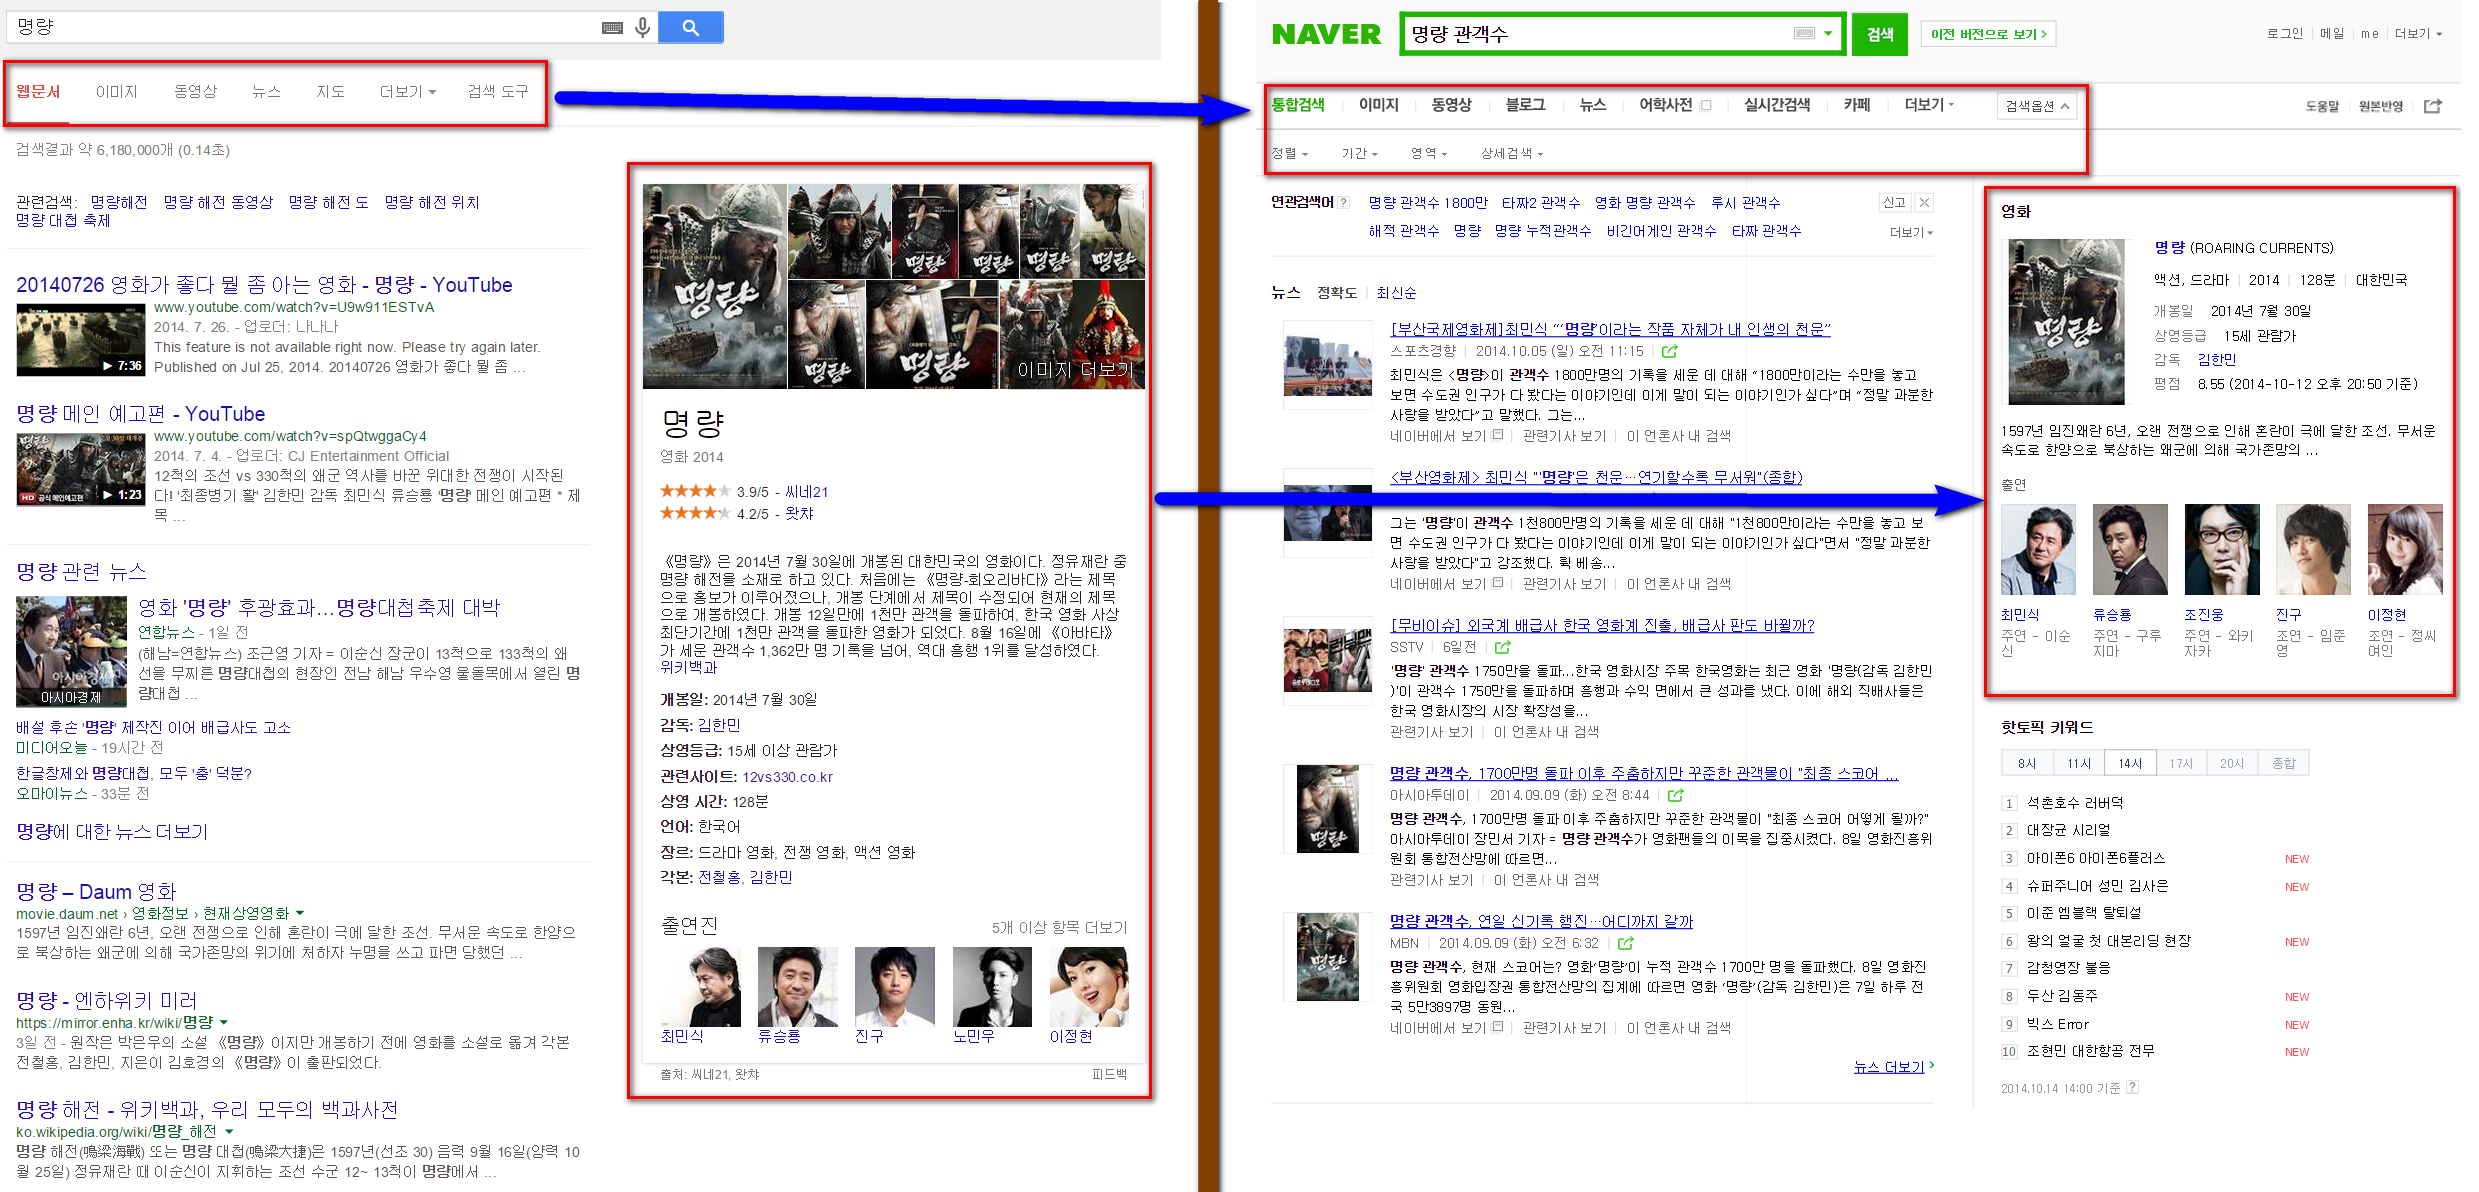 Naver Redesigning its SERP Interface after Four Years-2